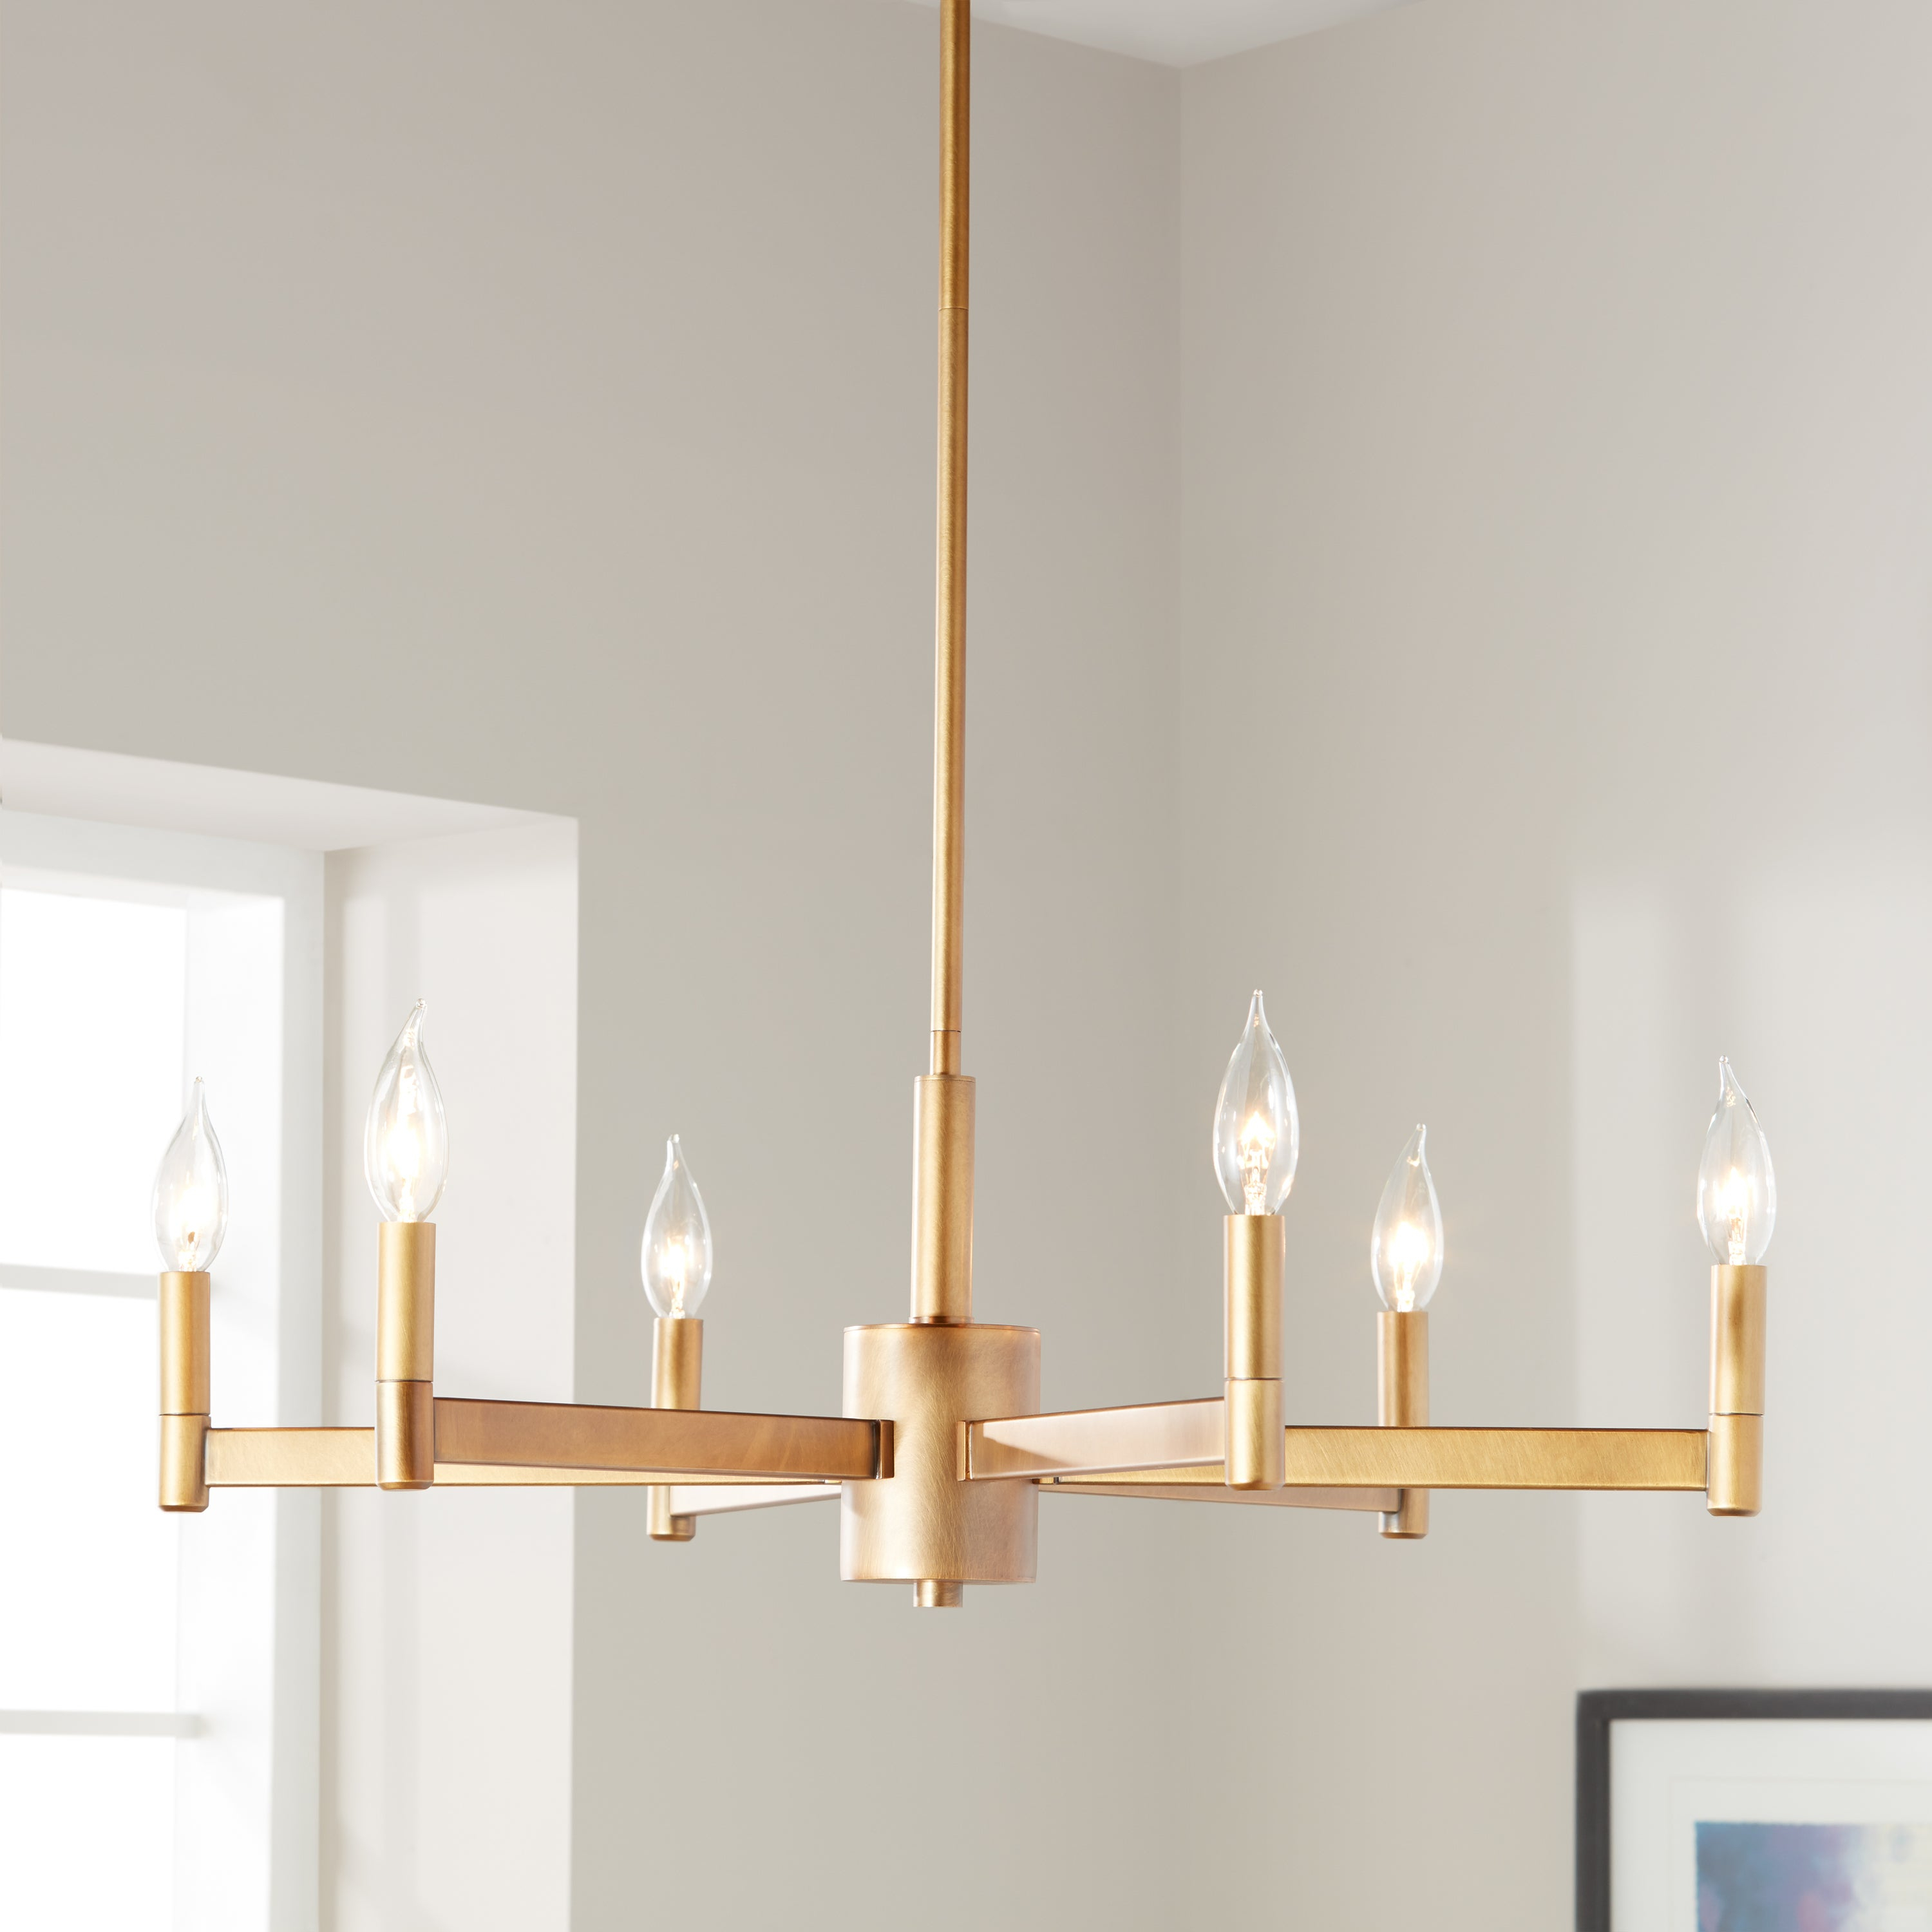 Kichler Lighting Erzo Collection 6-Light Natural Brass Chandelier within Alden 6-Light Globe Chandeliers (Image 26 of 30)